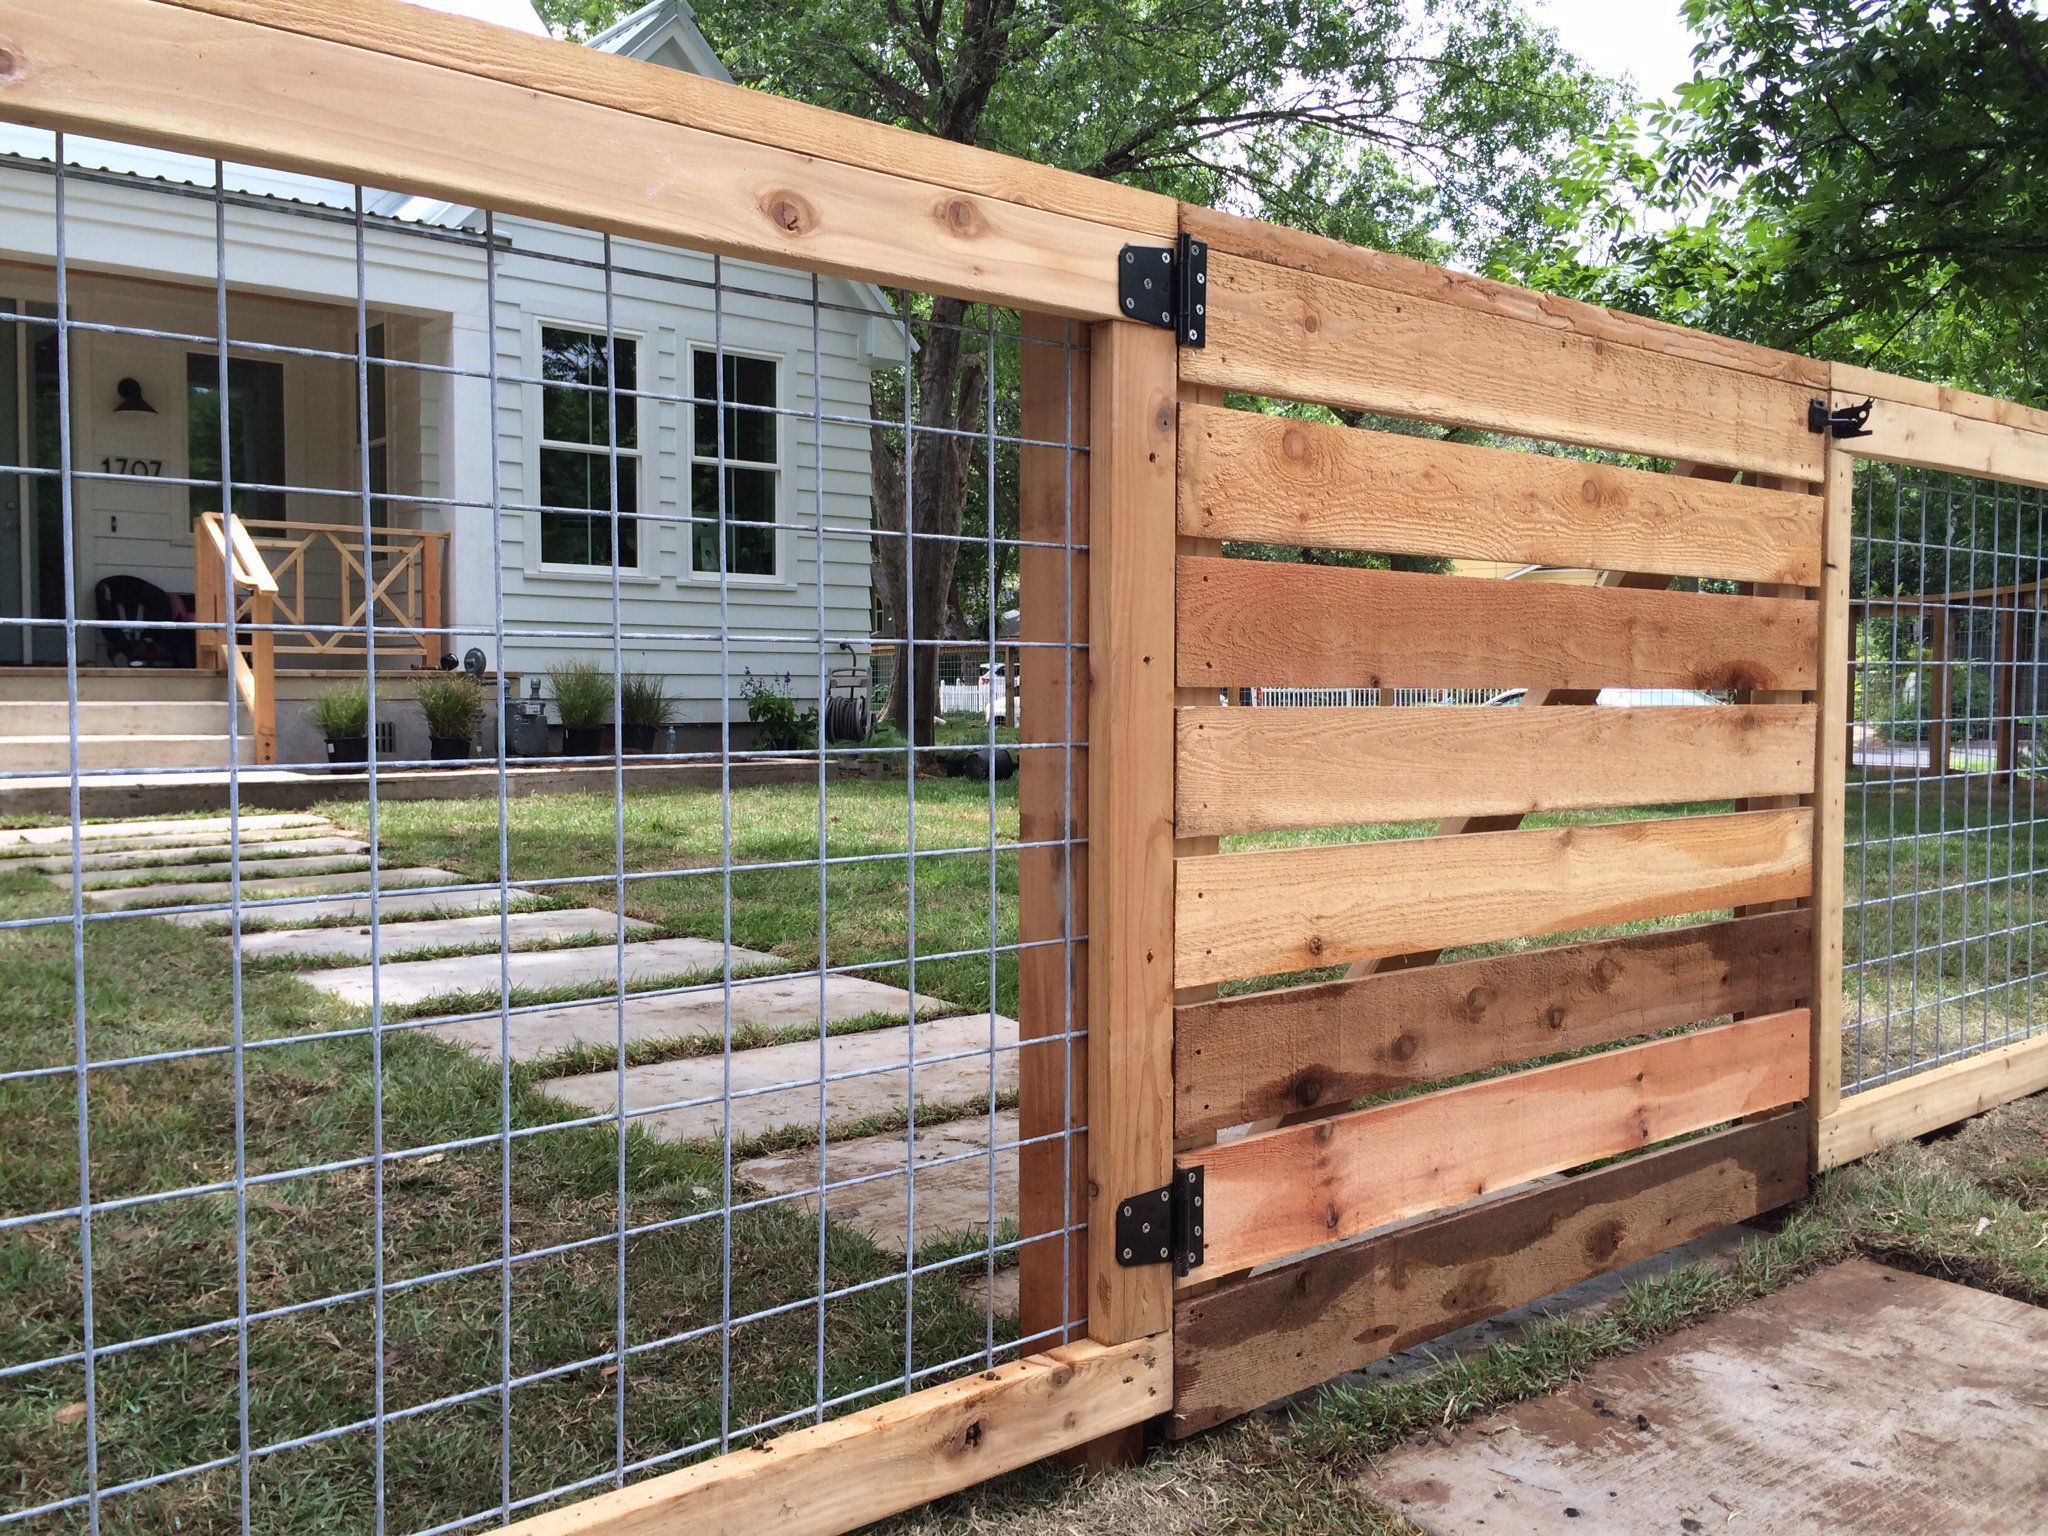 easy diy hog wire fence cost for raised beds how to build a hog wire fence ideas metal vines hog wire fence dogs hog wire fence gate railing modern hog wire  [ 2048 x 1536 Pixel ]